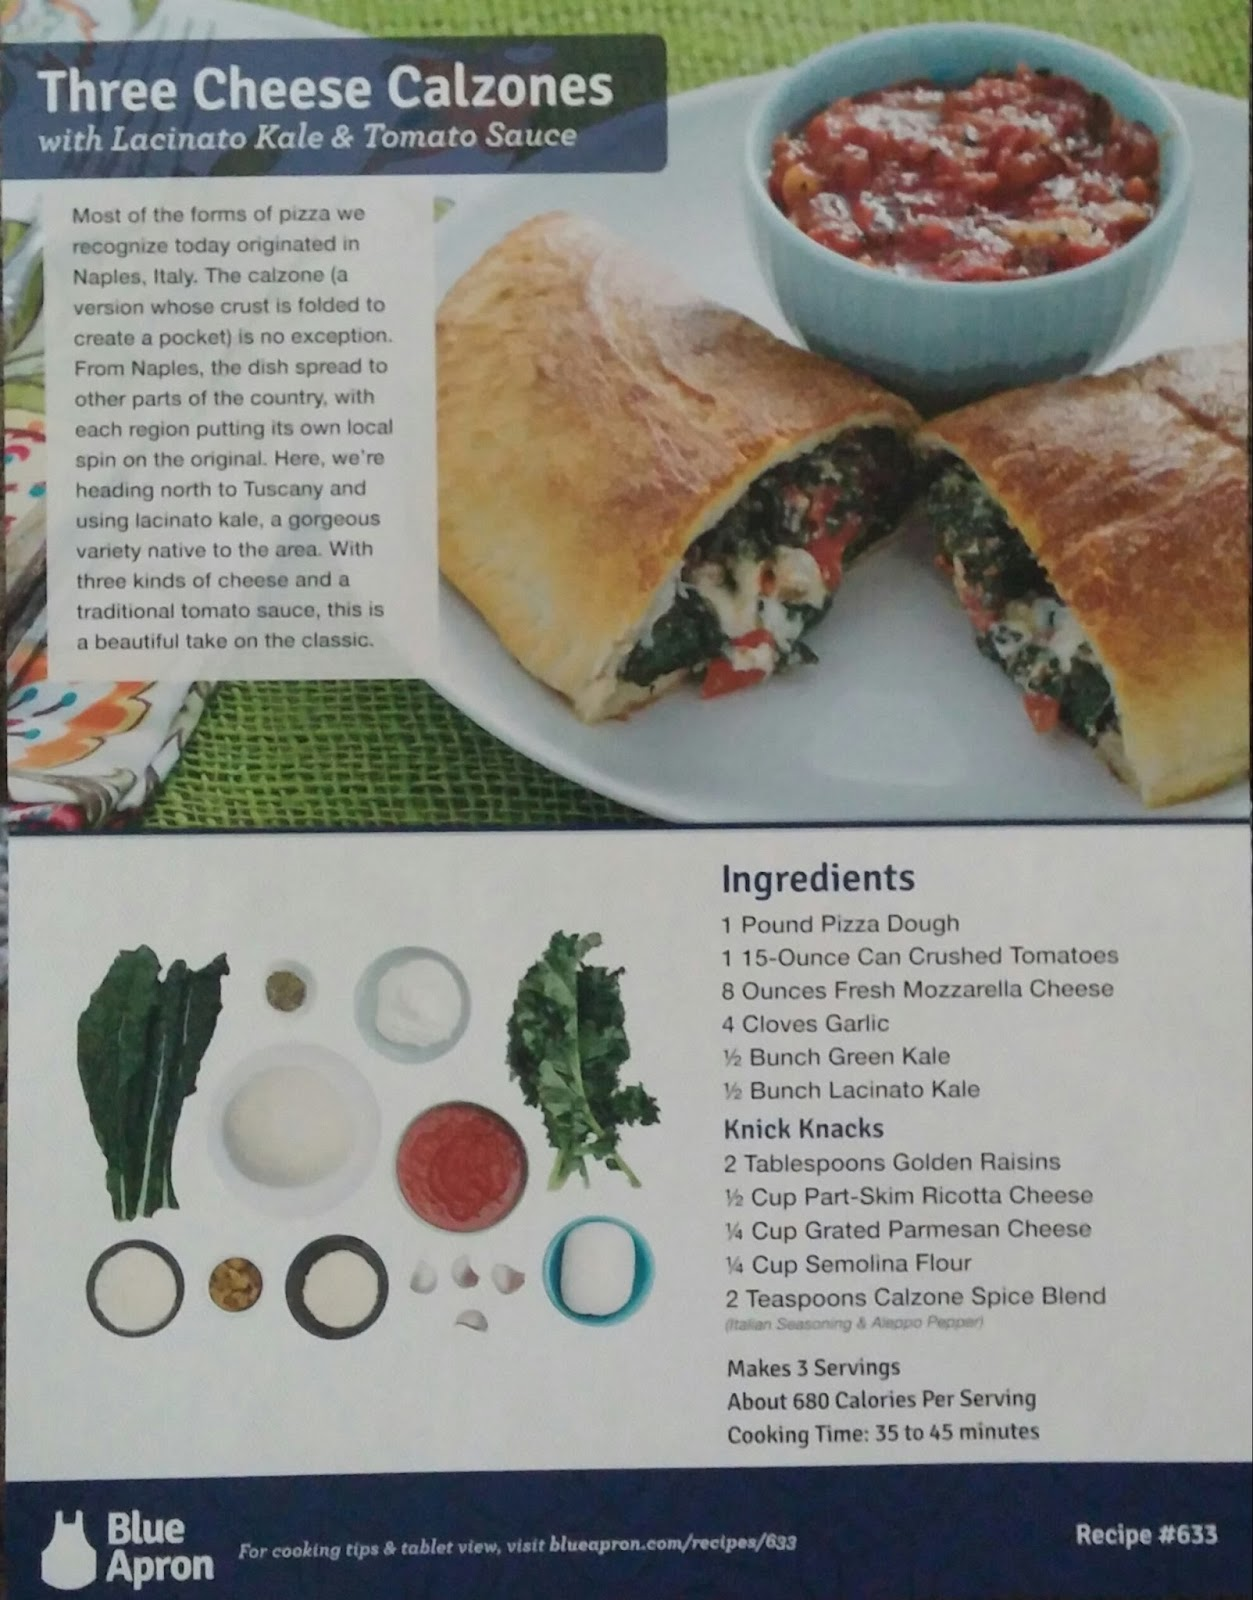 Blue apron hawaii - The First Meal I Chose To Create Was The Three Cheese Calzones With Lacinato Kale And Tomato Sauce Because They Sounded Delicious And Easy